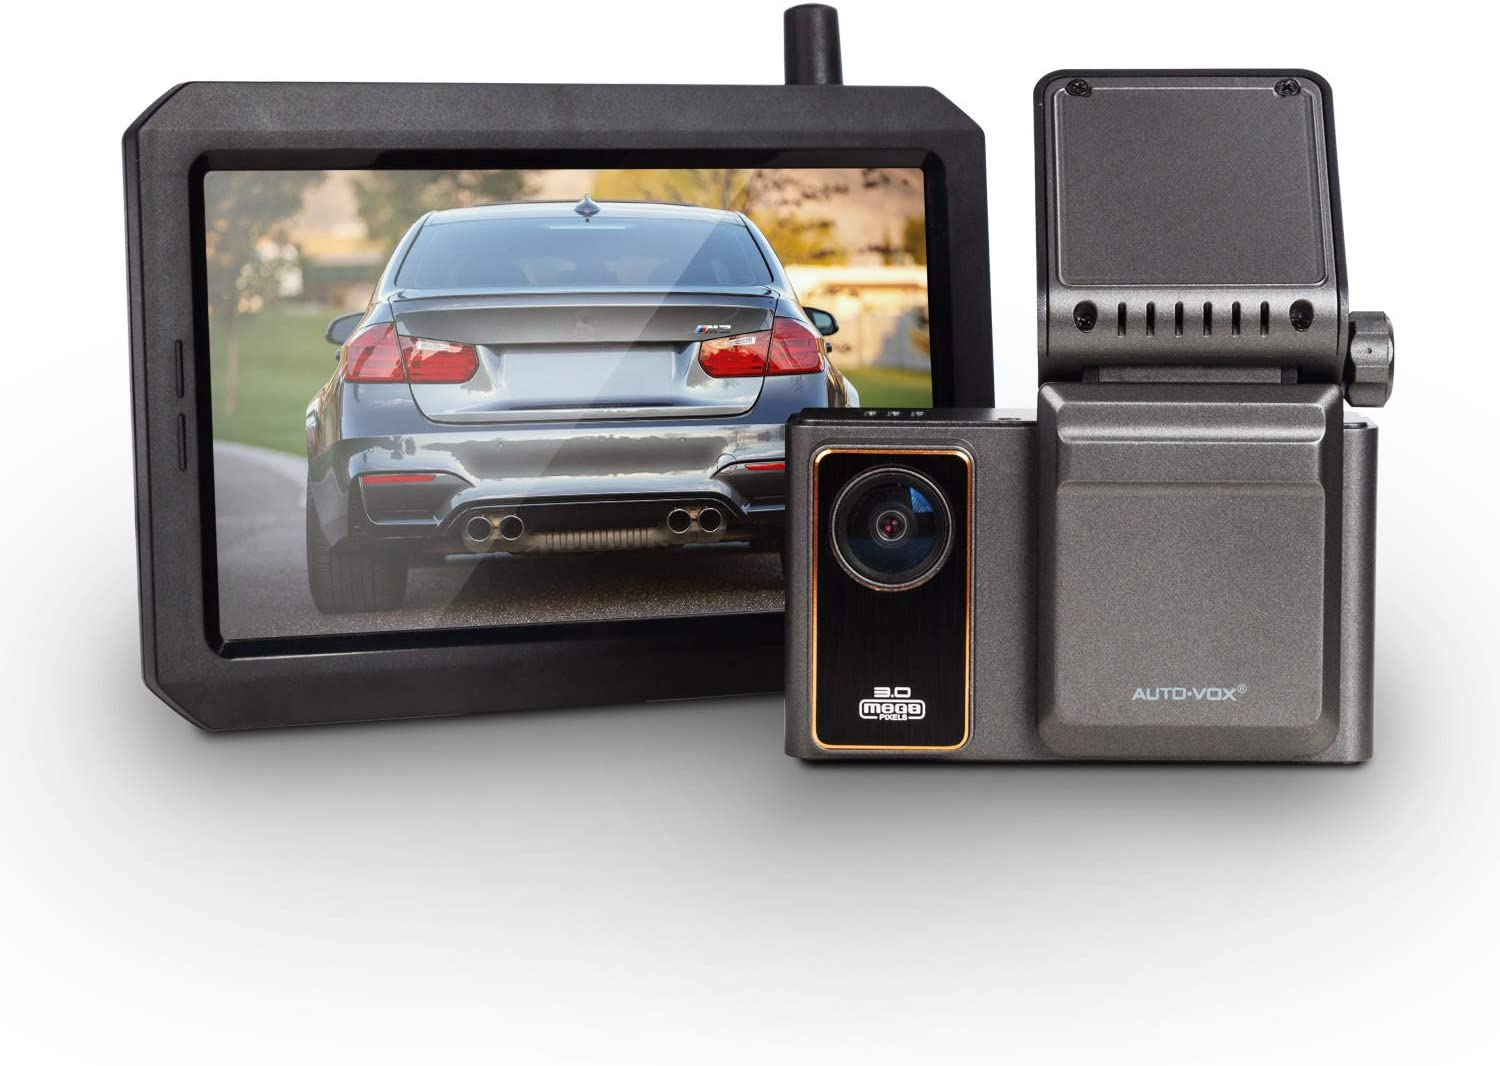 AUTO-VOX Safe Driving Set, AD1 Dual Dash Cam Front and Inside View & W7 Wireless Backup Camera for Drivier's Safety